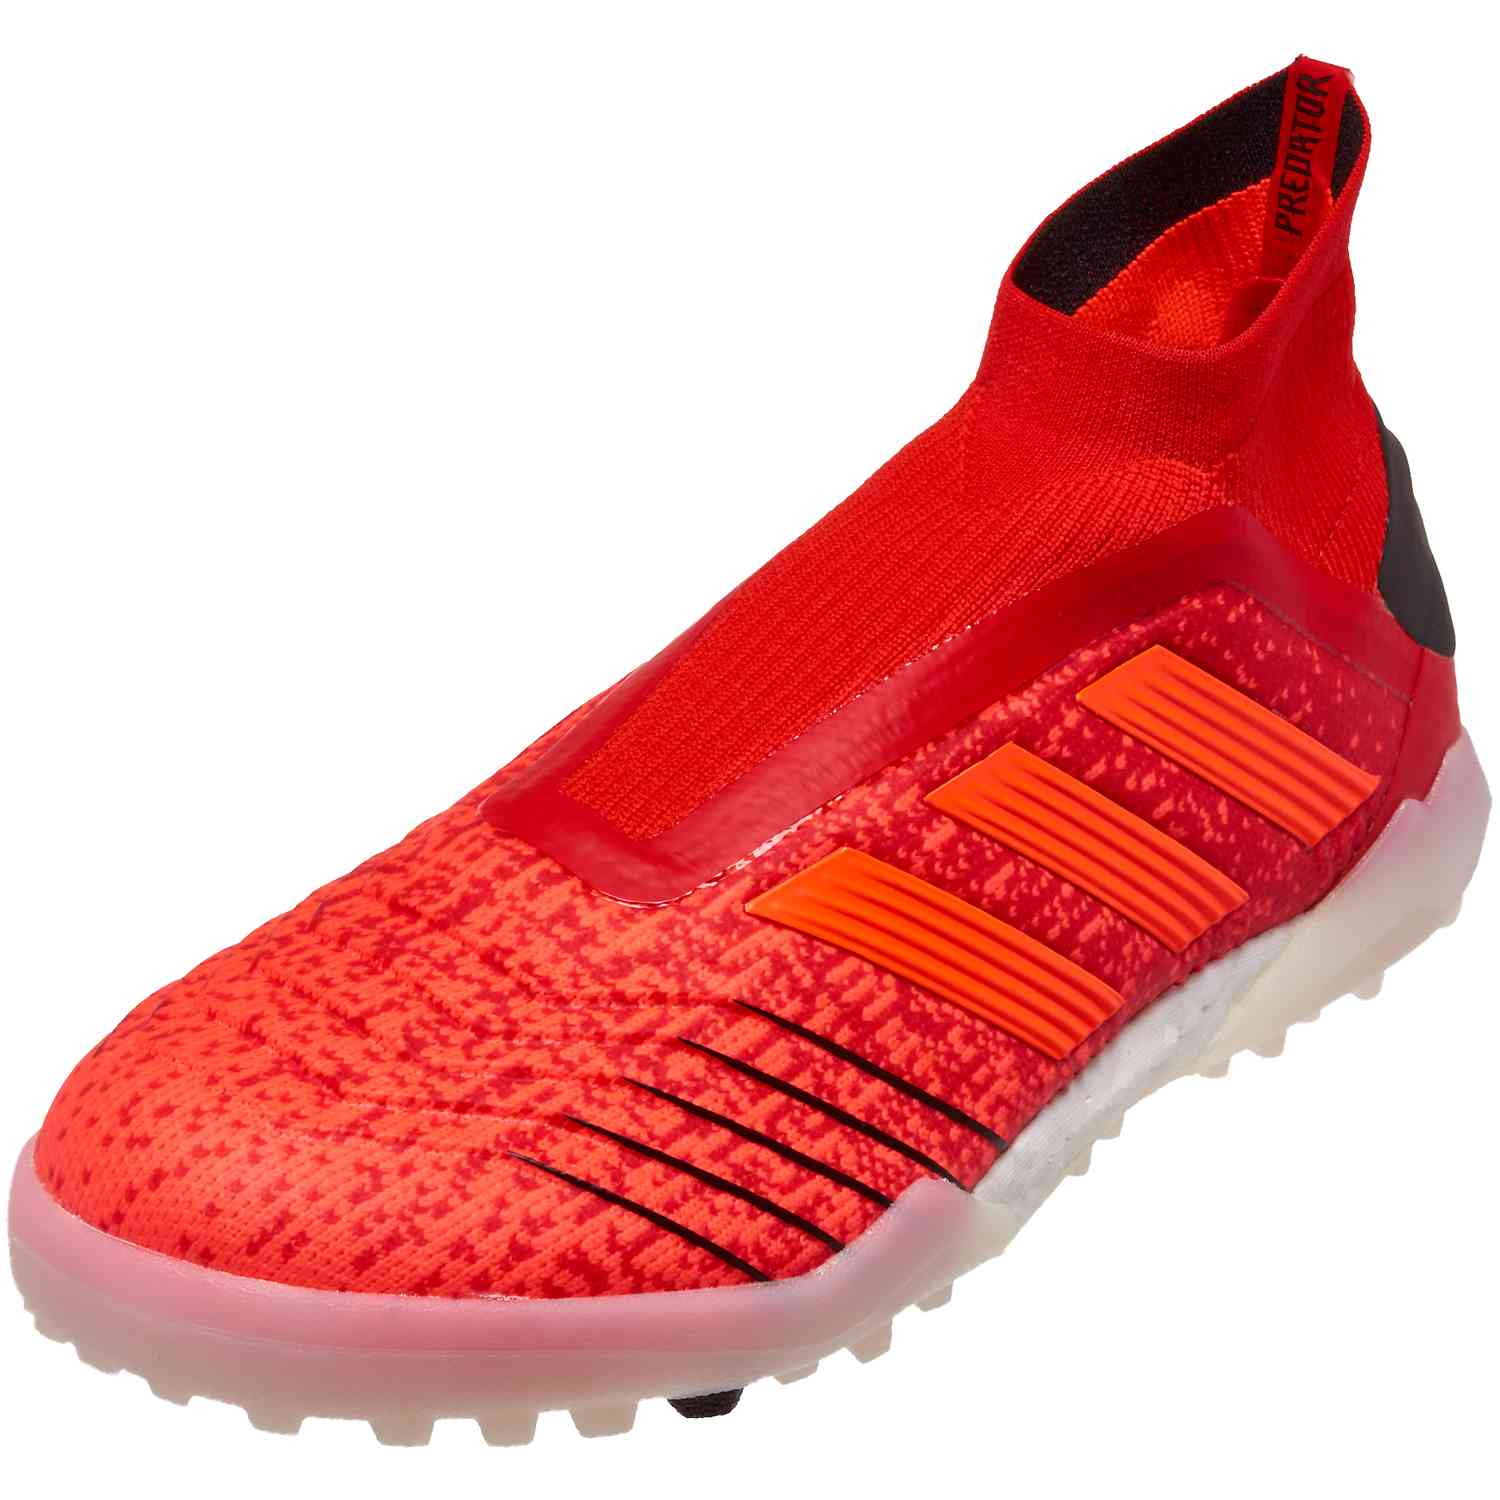 outlet store 8d24d 46b24 adidas Predator Tango 19+ TF – Initiator Pack